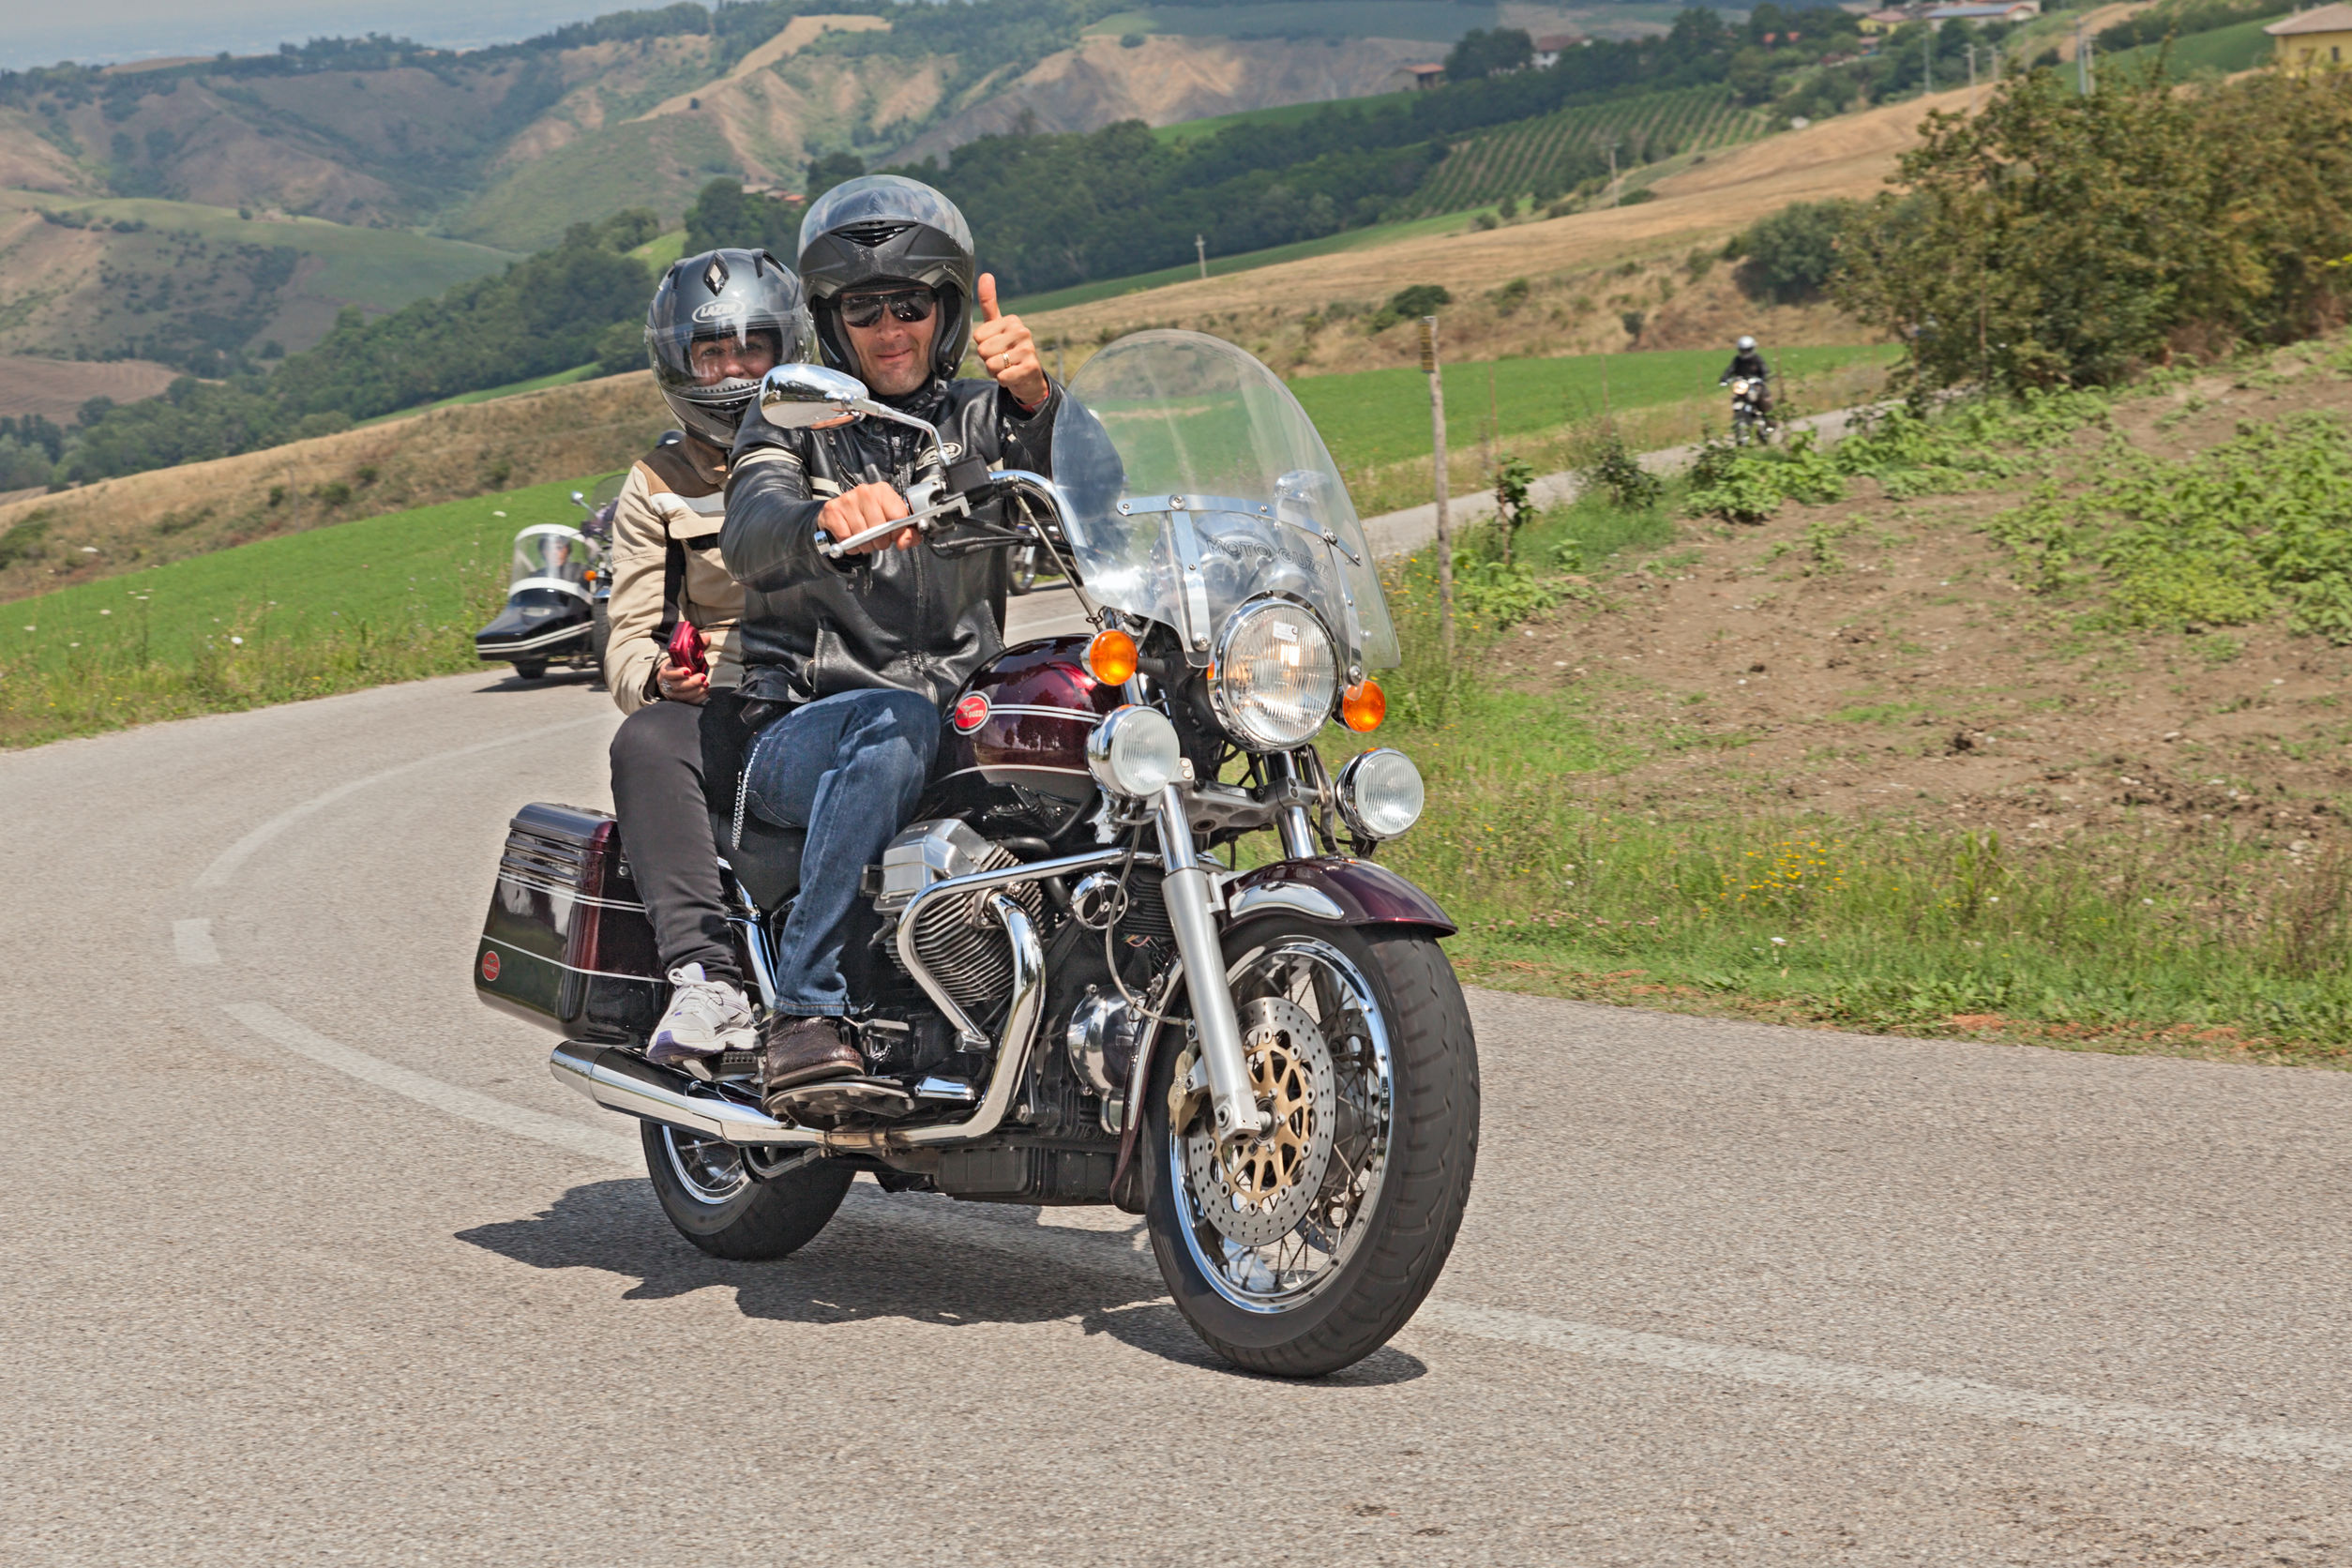 30036861 - couple of bikers riding a vintage italian motorcycle moto guzzi california classic at rally ix moto guzzi memorial zigolo on july 13, 2014 in meldola, fc, italy